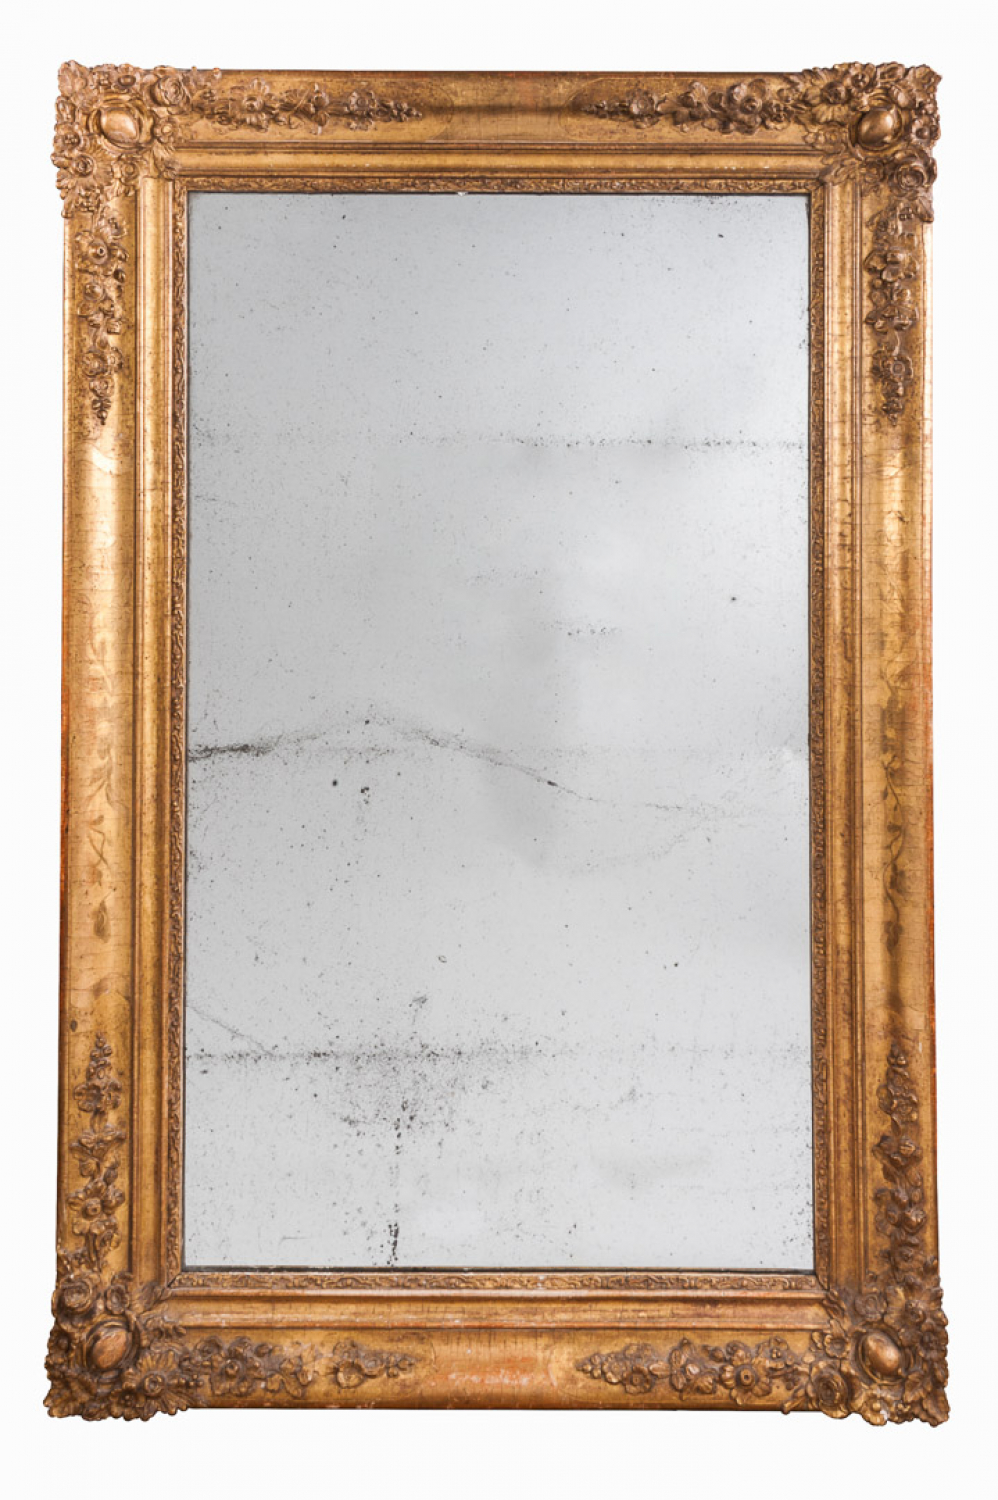 French Mirror with Mercury Glass